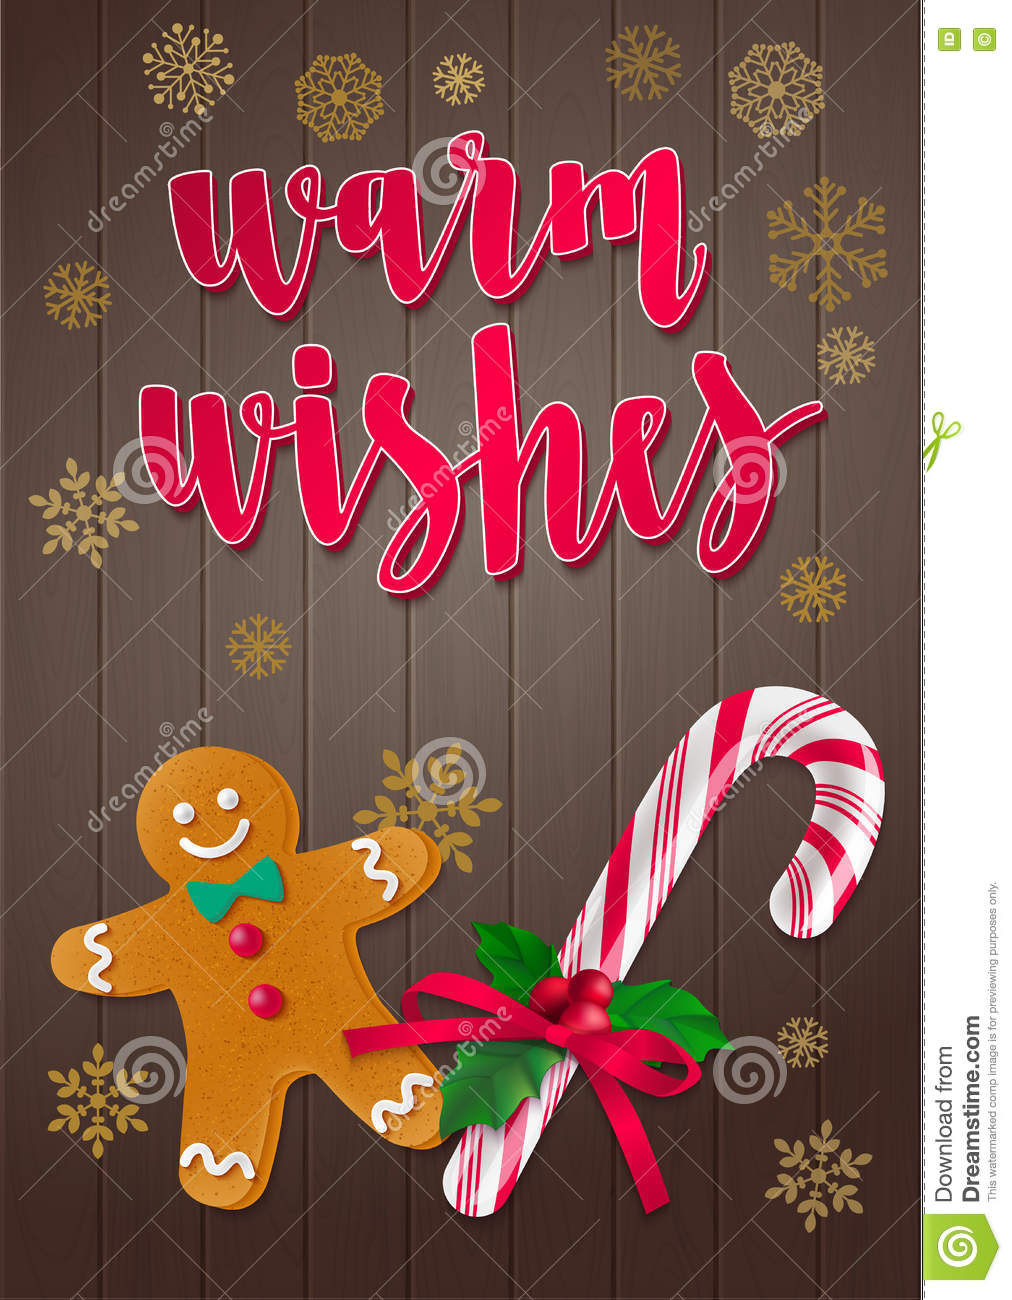 Warm Wishes Holiday Greeting Card With Calligraphy And Decorative